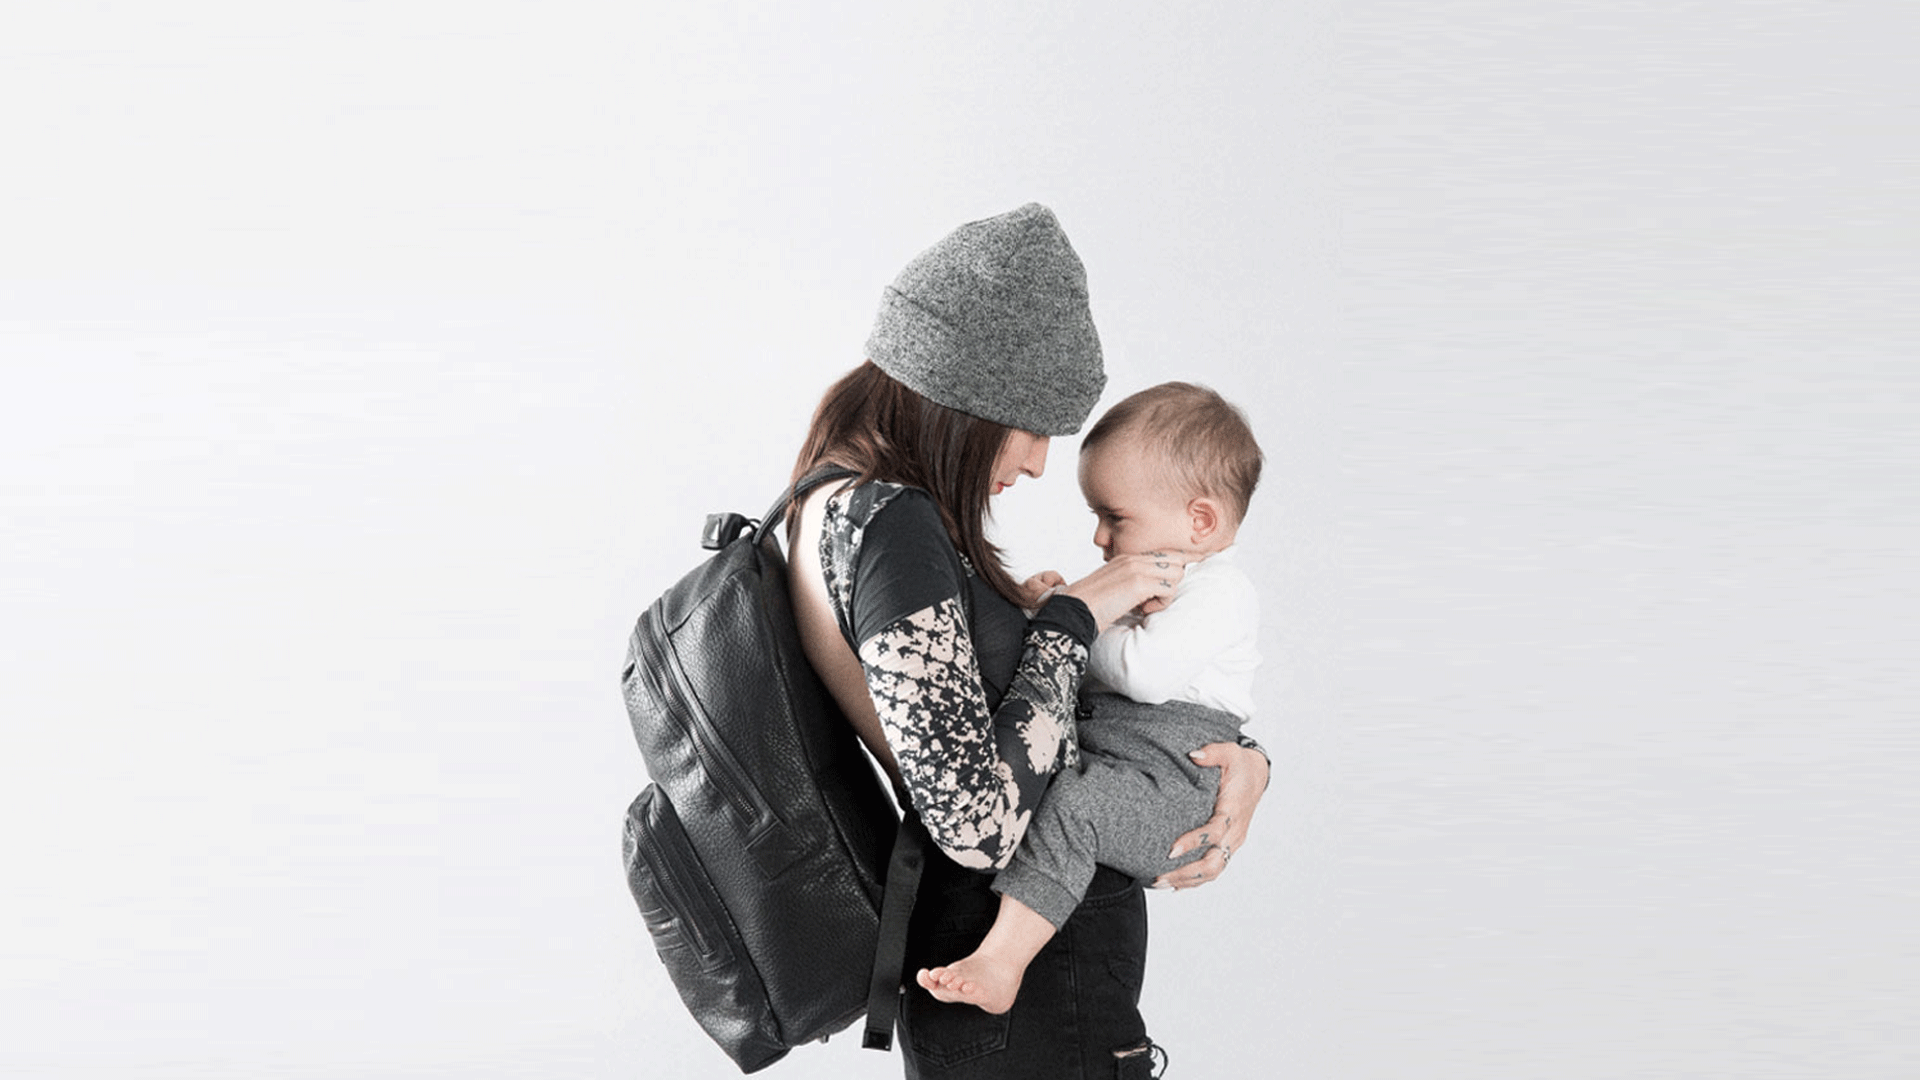 8 Backpacks For Adults